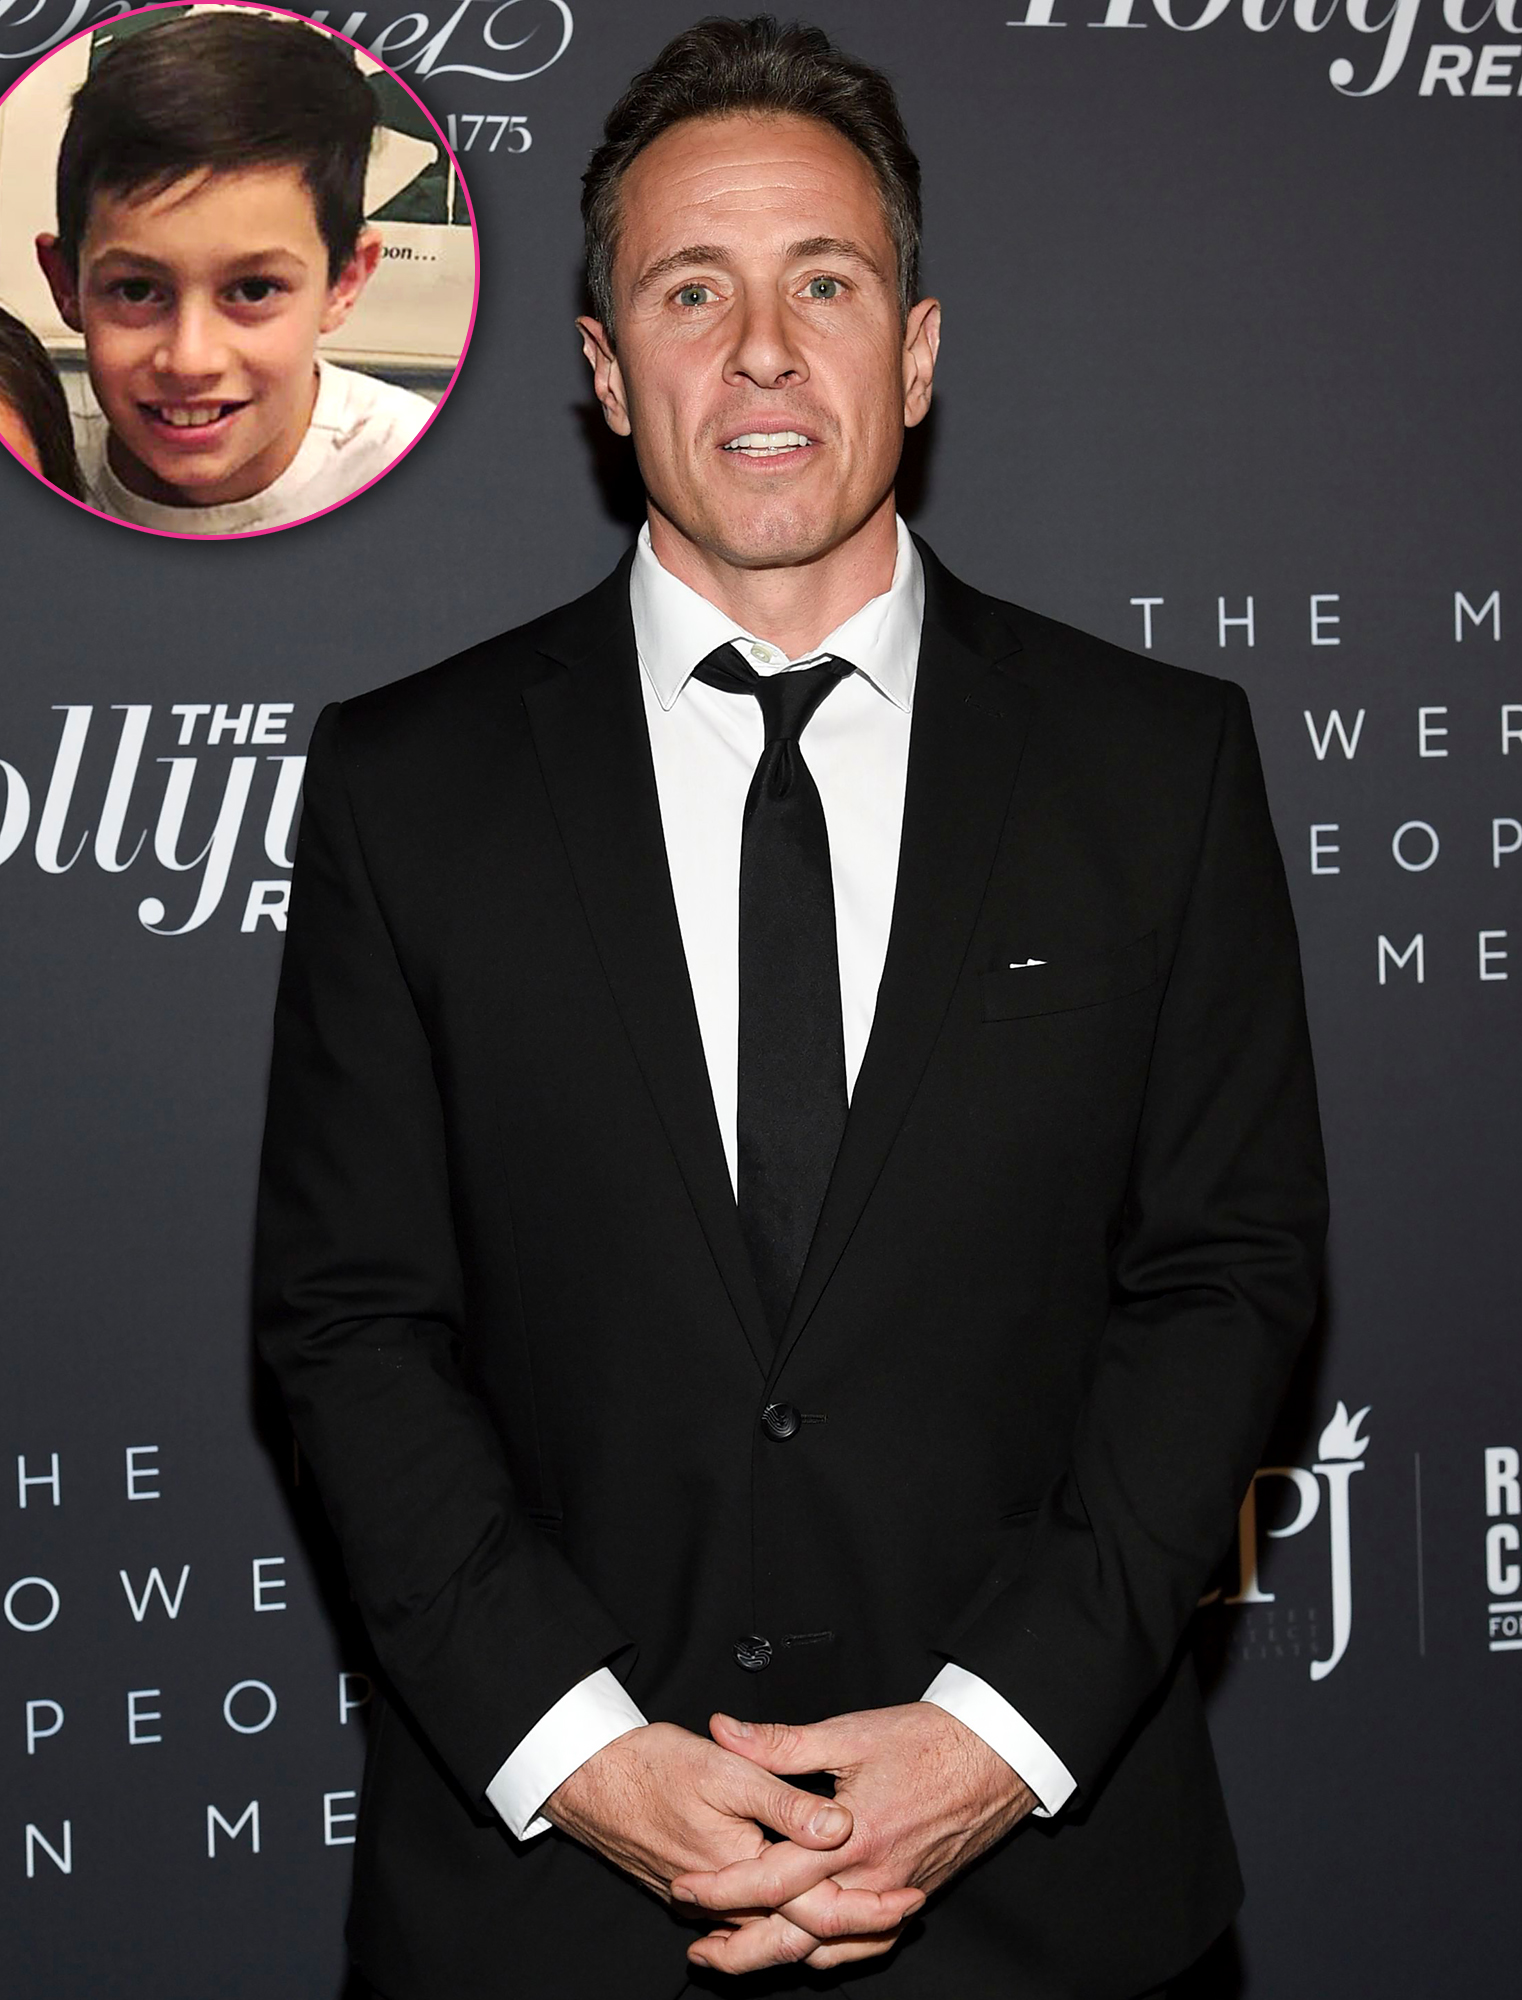 Chris Cuomo Gives an Update on 14-Year-Old Son's Condition After Coronavirus Diagnosis